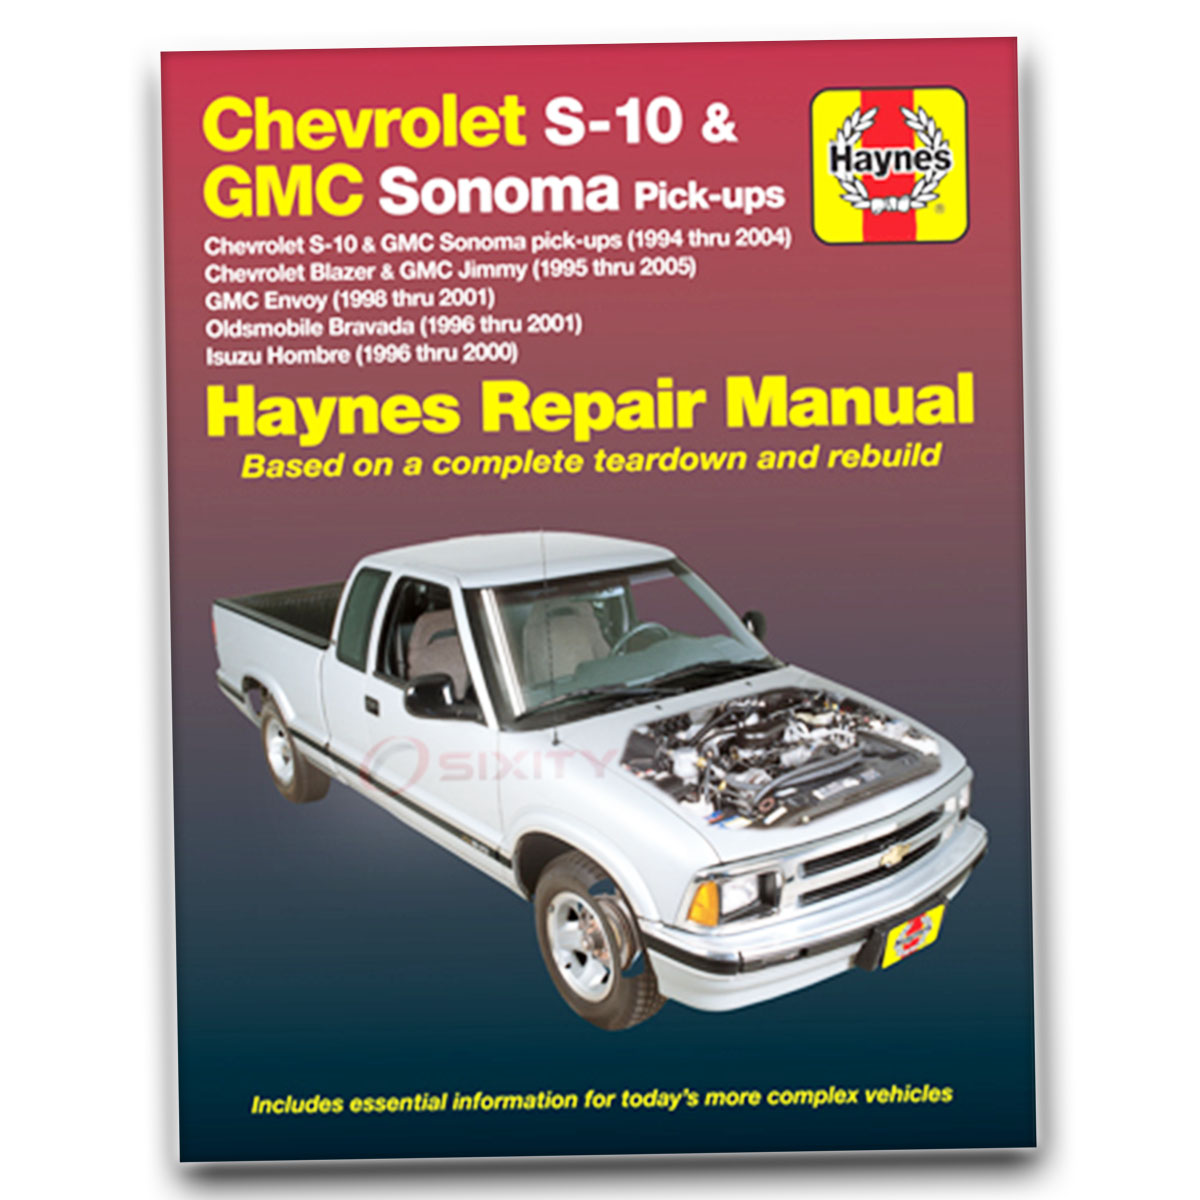 Haynes Repair Manual 24071 for Chevrolet S-10 94-04 GMC Envoy 98-01 Shop ky